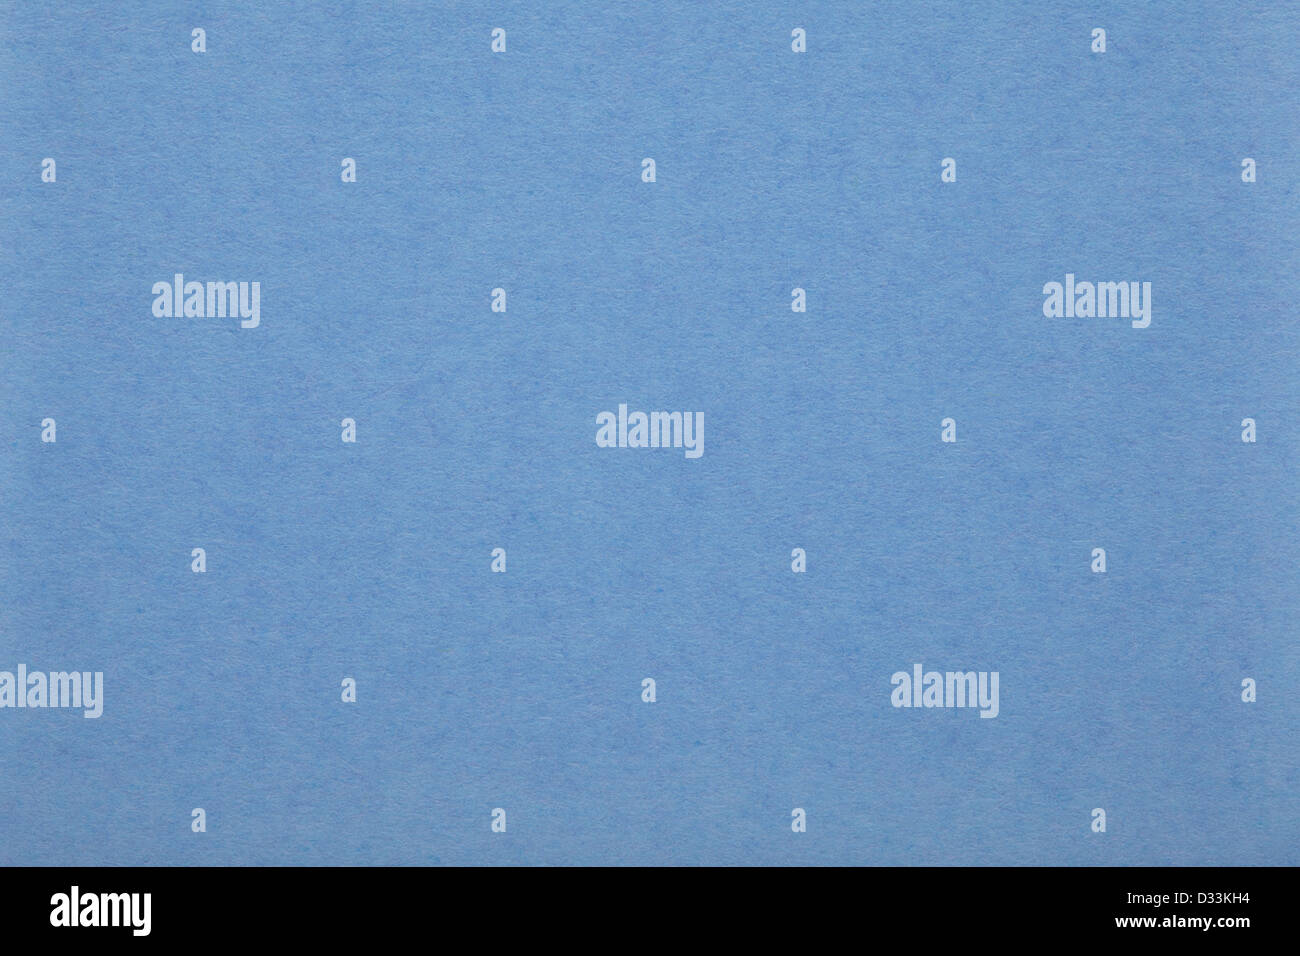 Blue paper texture background - Stock Image